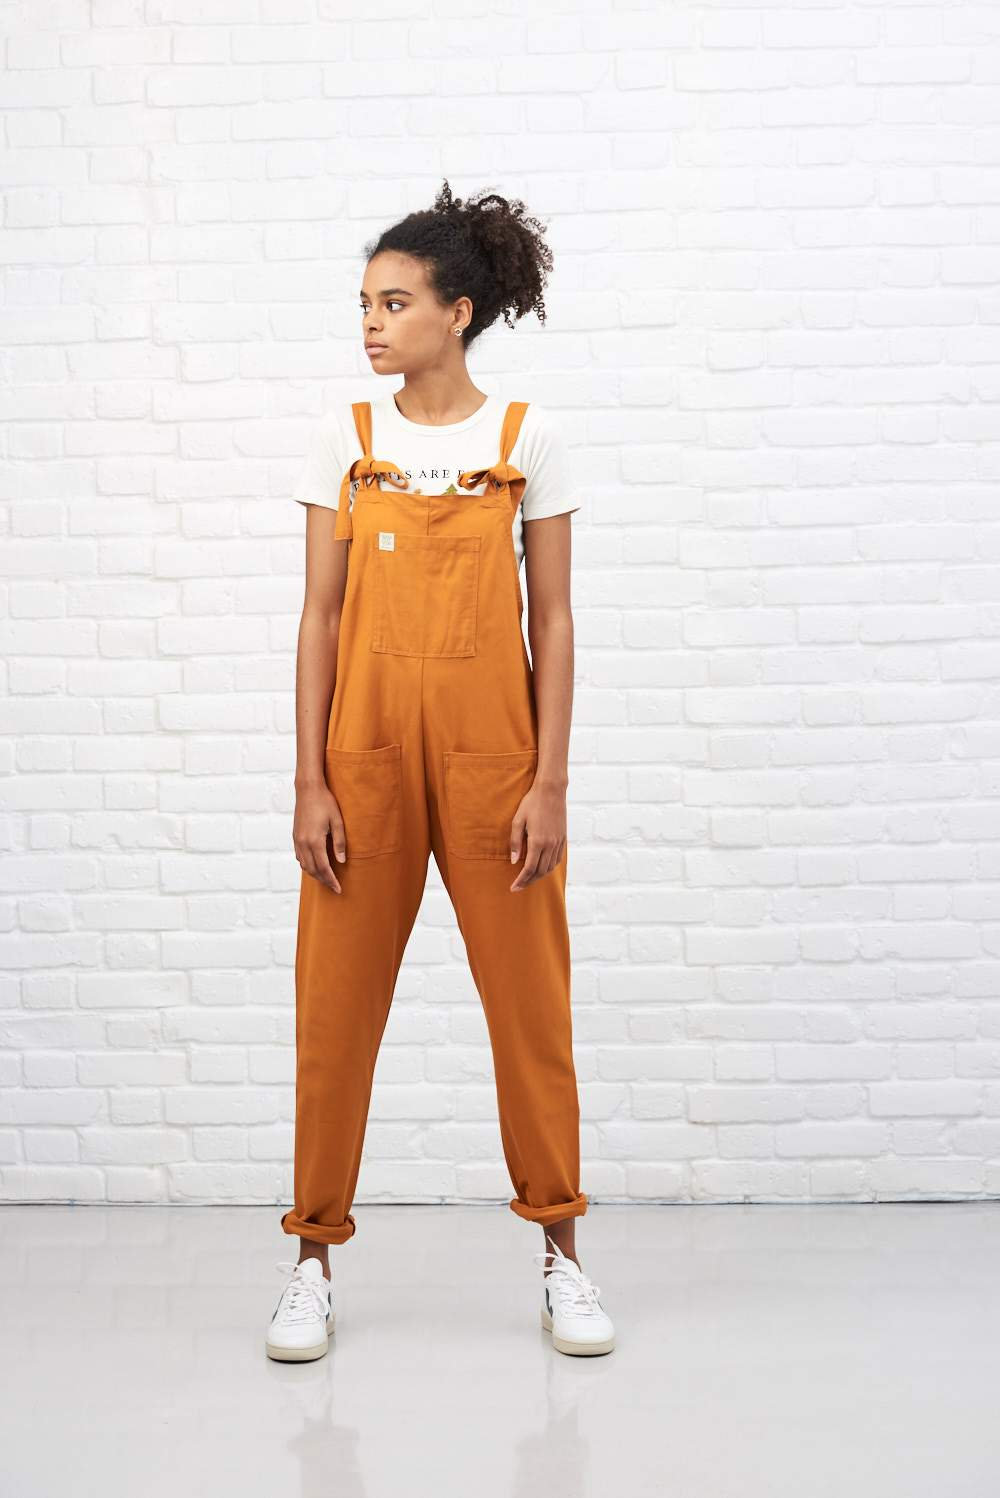 Lucy & Yak Dungarees Organic 'Umi' Cotton Dungarees in Rust Orange